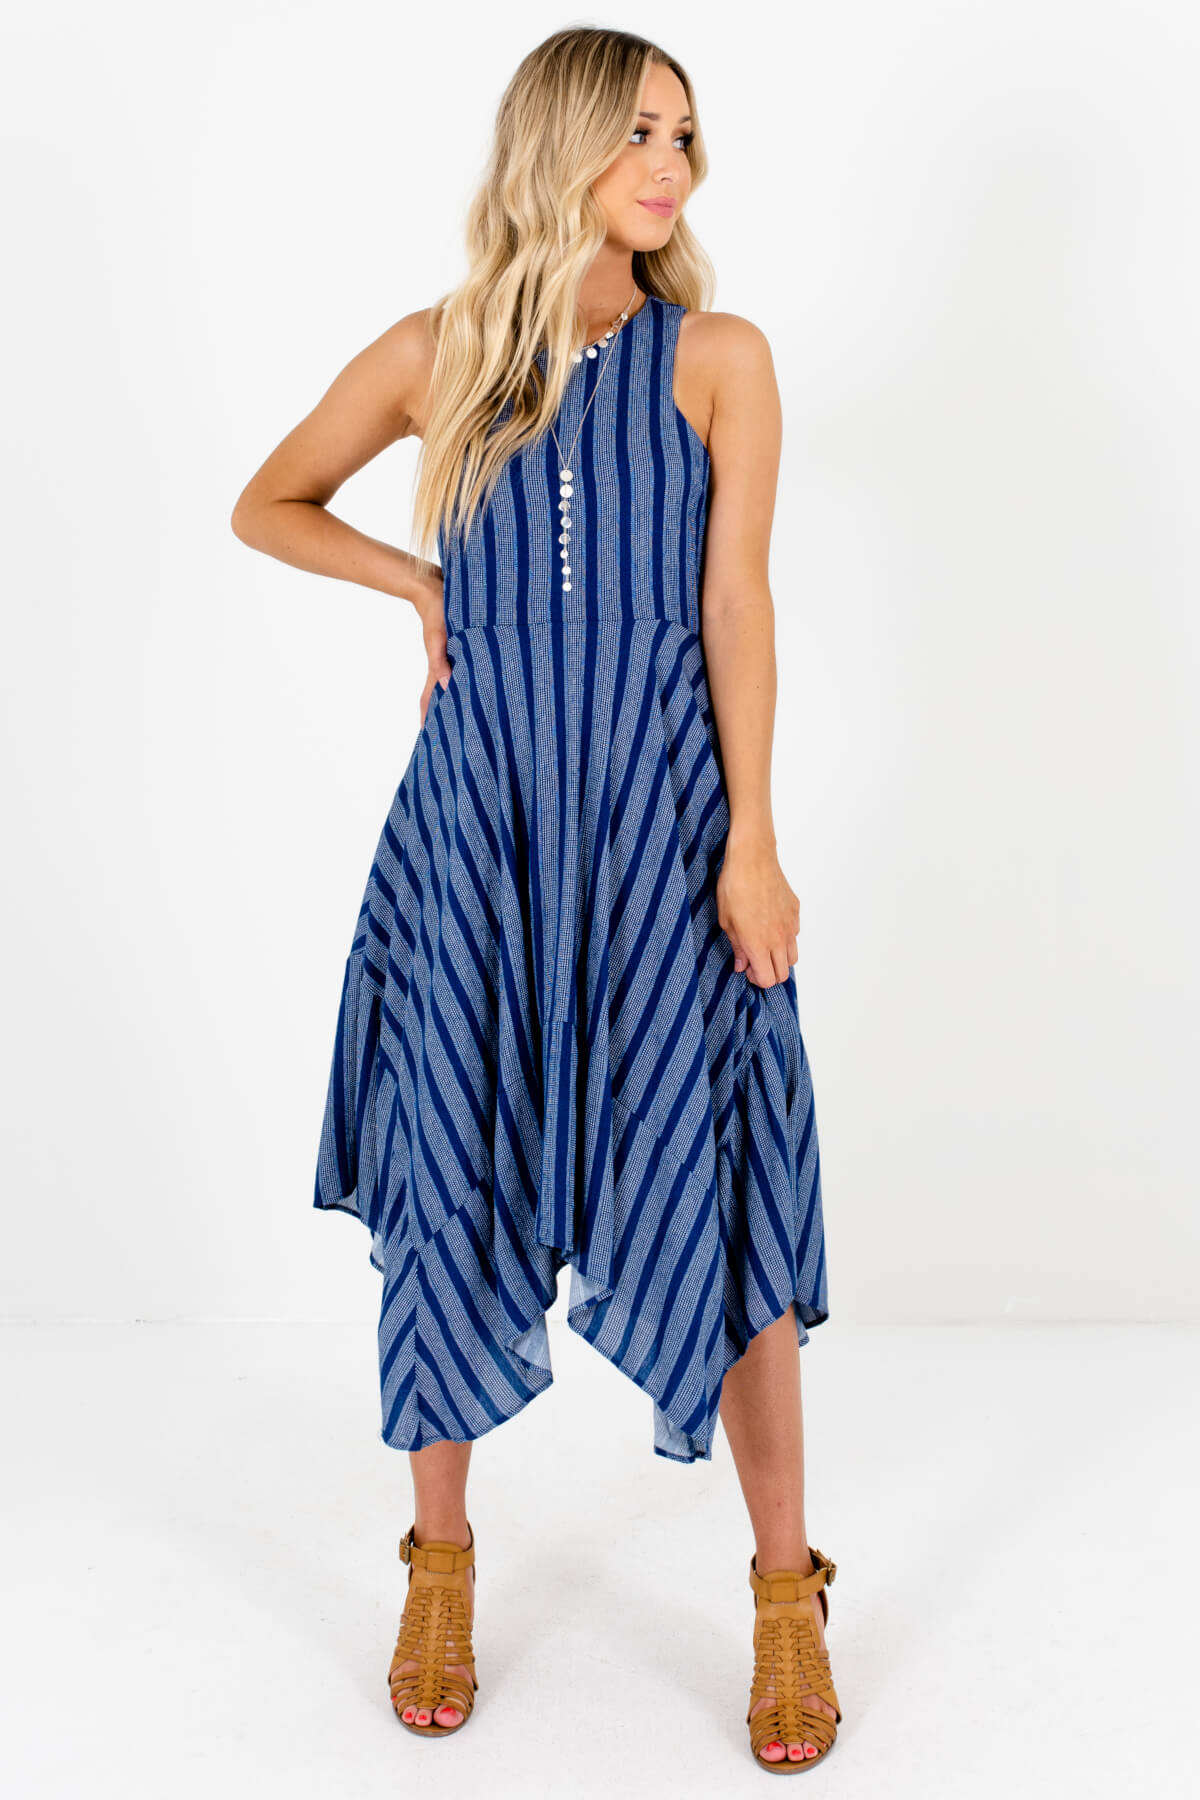 Blue and White Stripe Patterned Boutique Dresses for Women